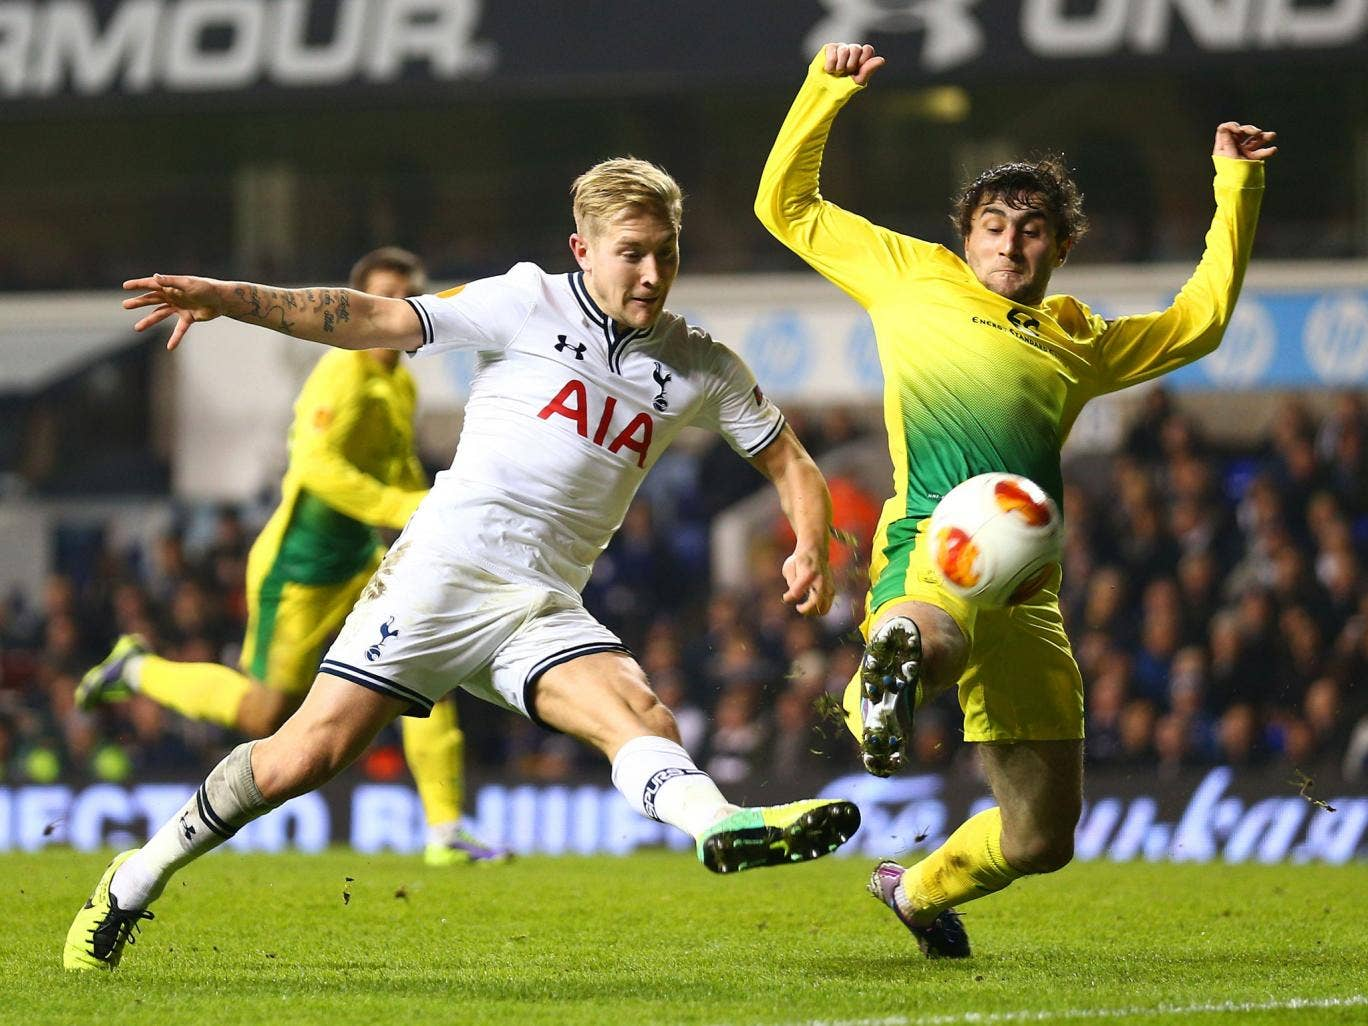 Lewis Holtby gets on the end of an Andros Townsend pass to score against Anzhi Makhachkala